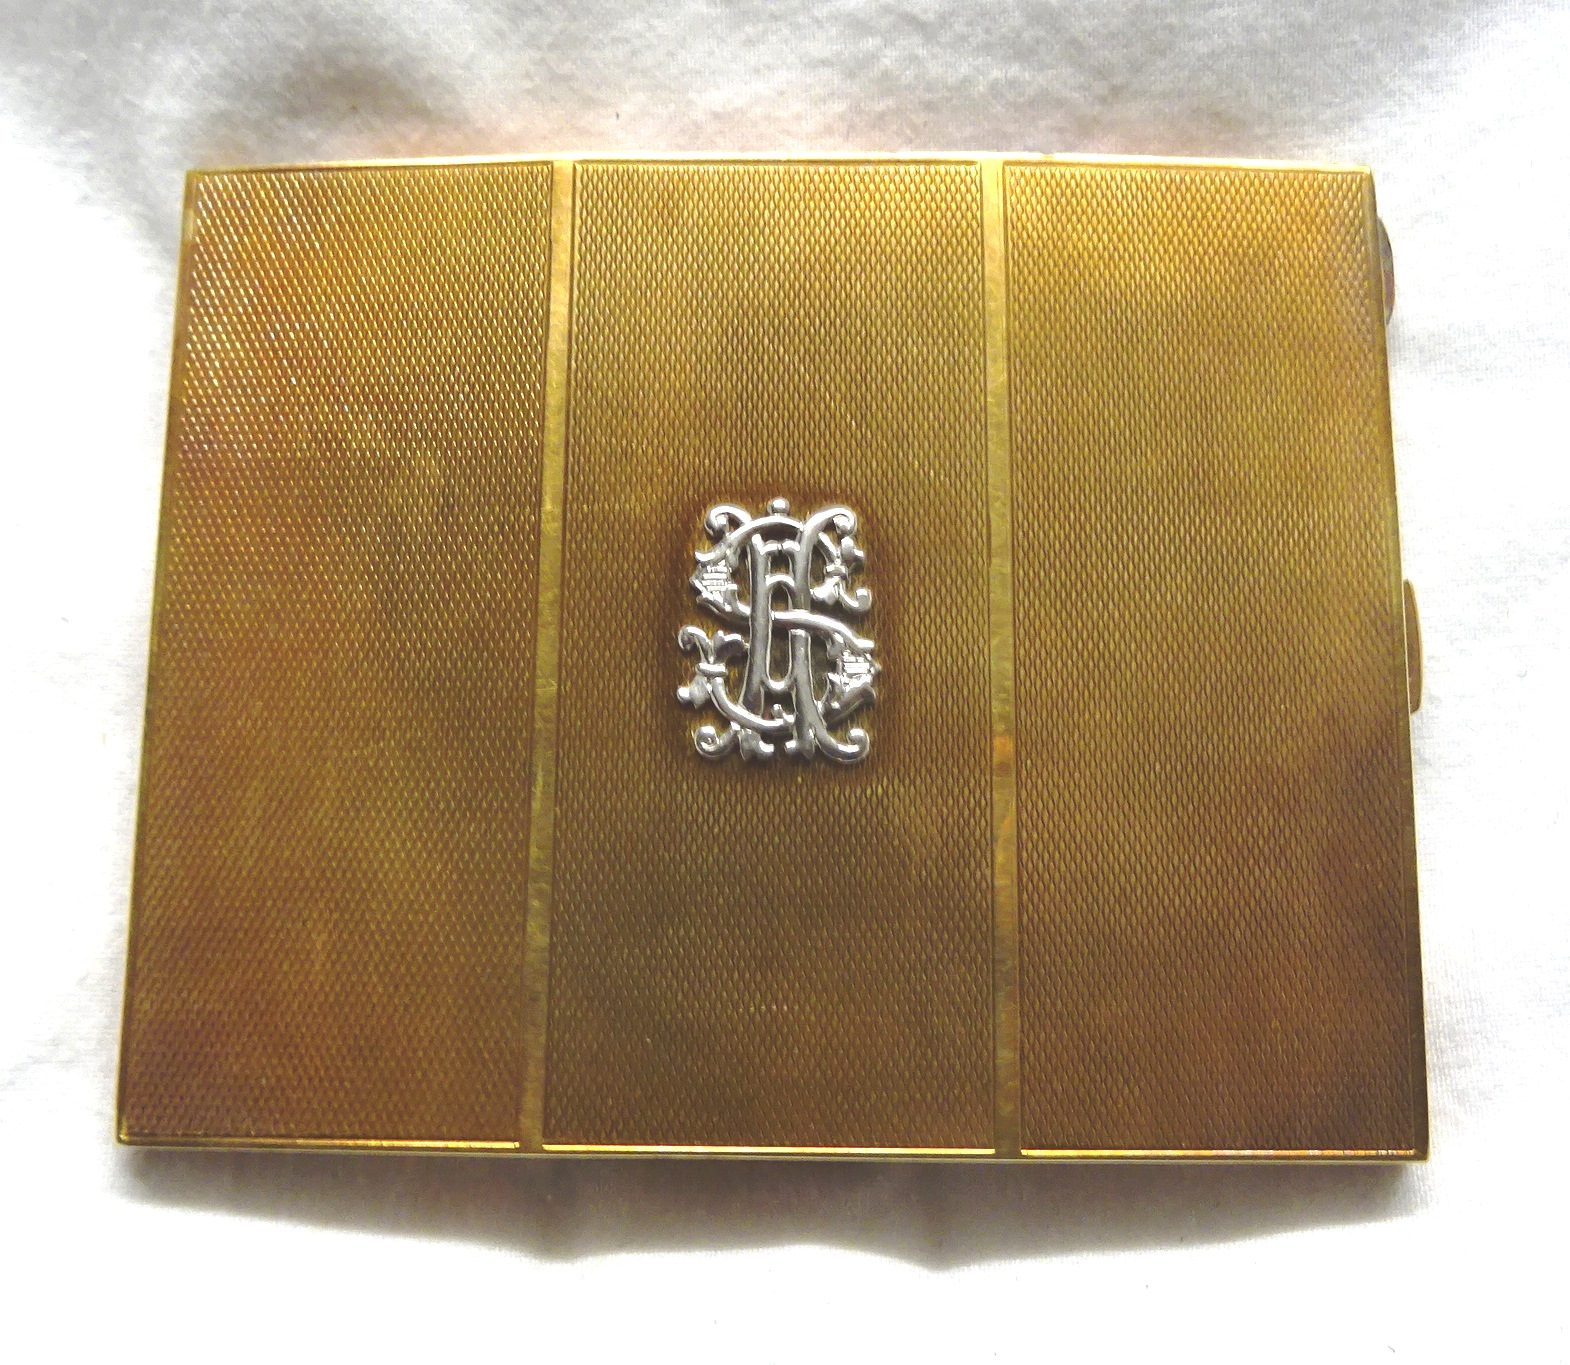 A 14ct. engine turned gold Cigarette Case